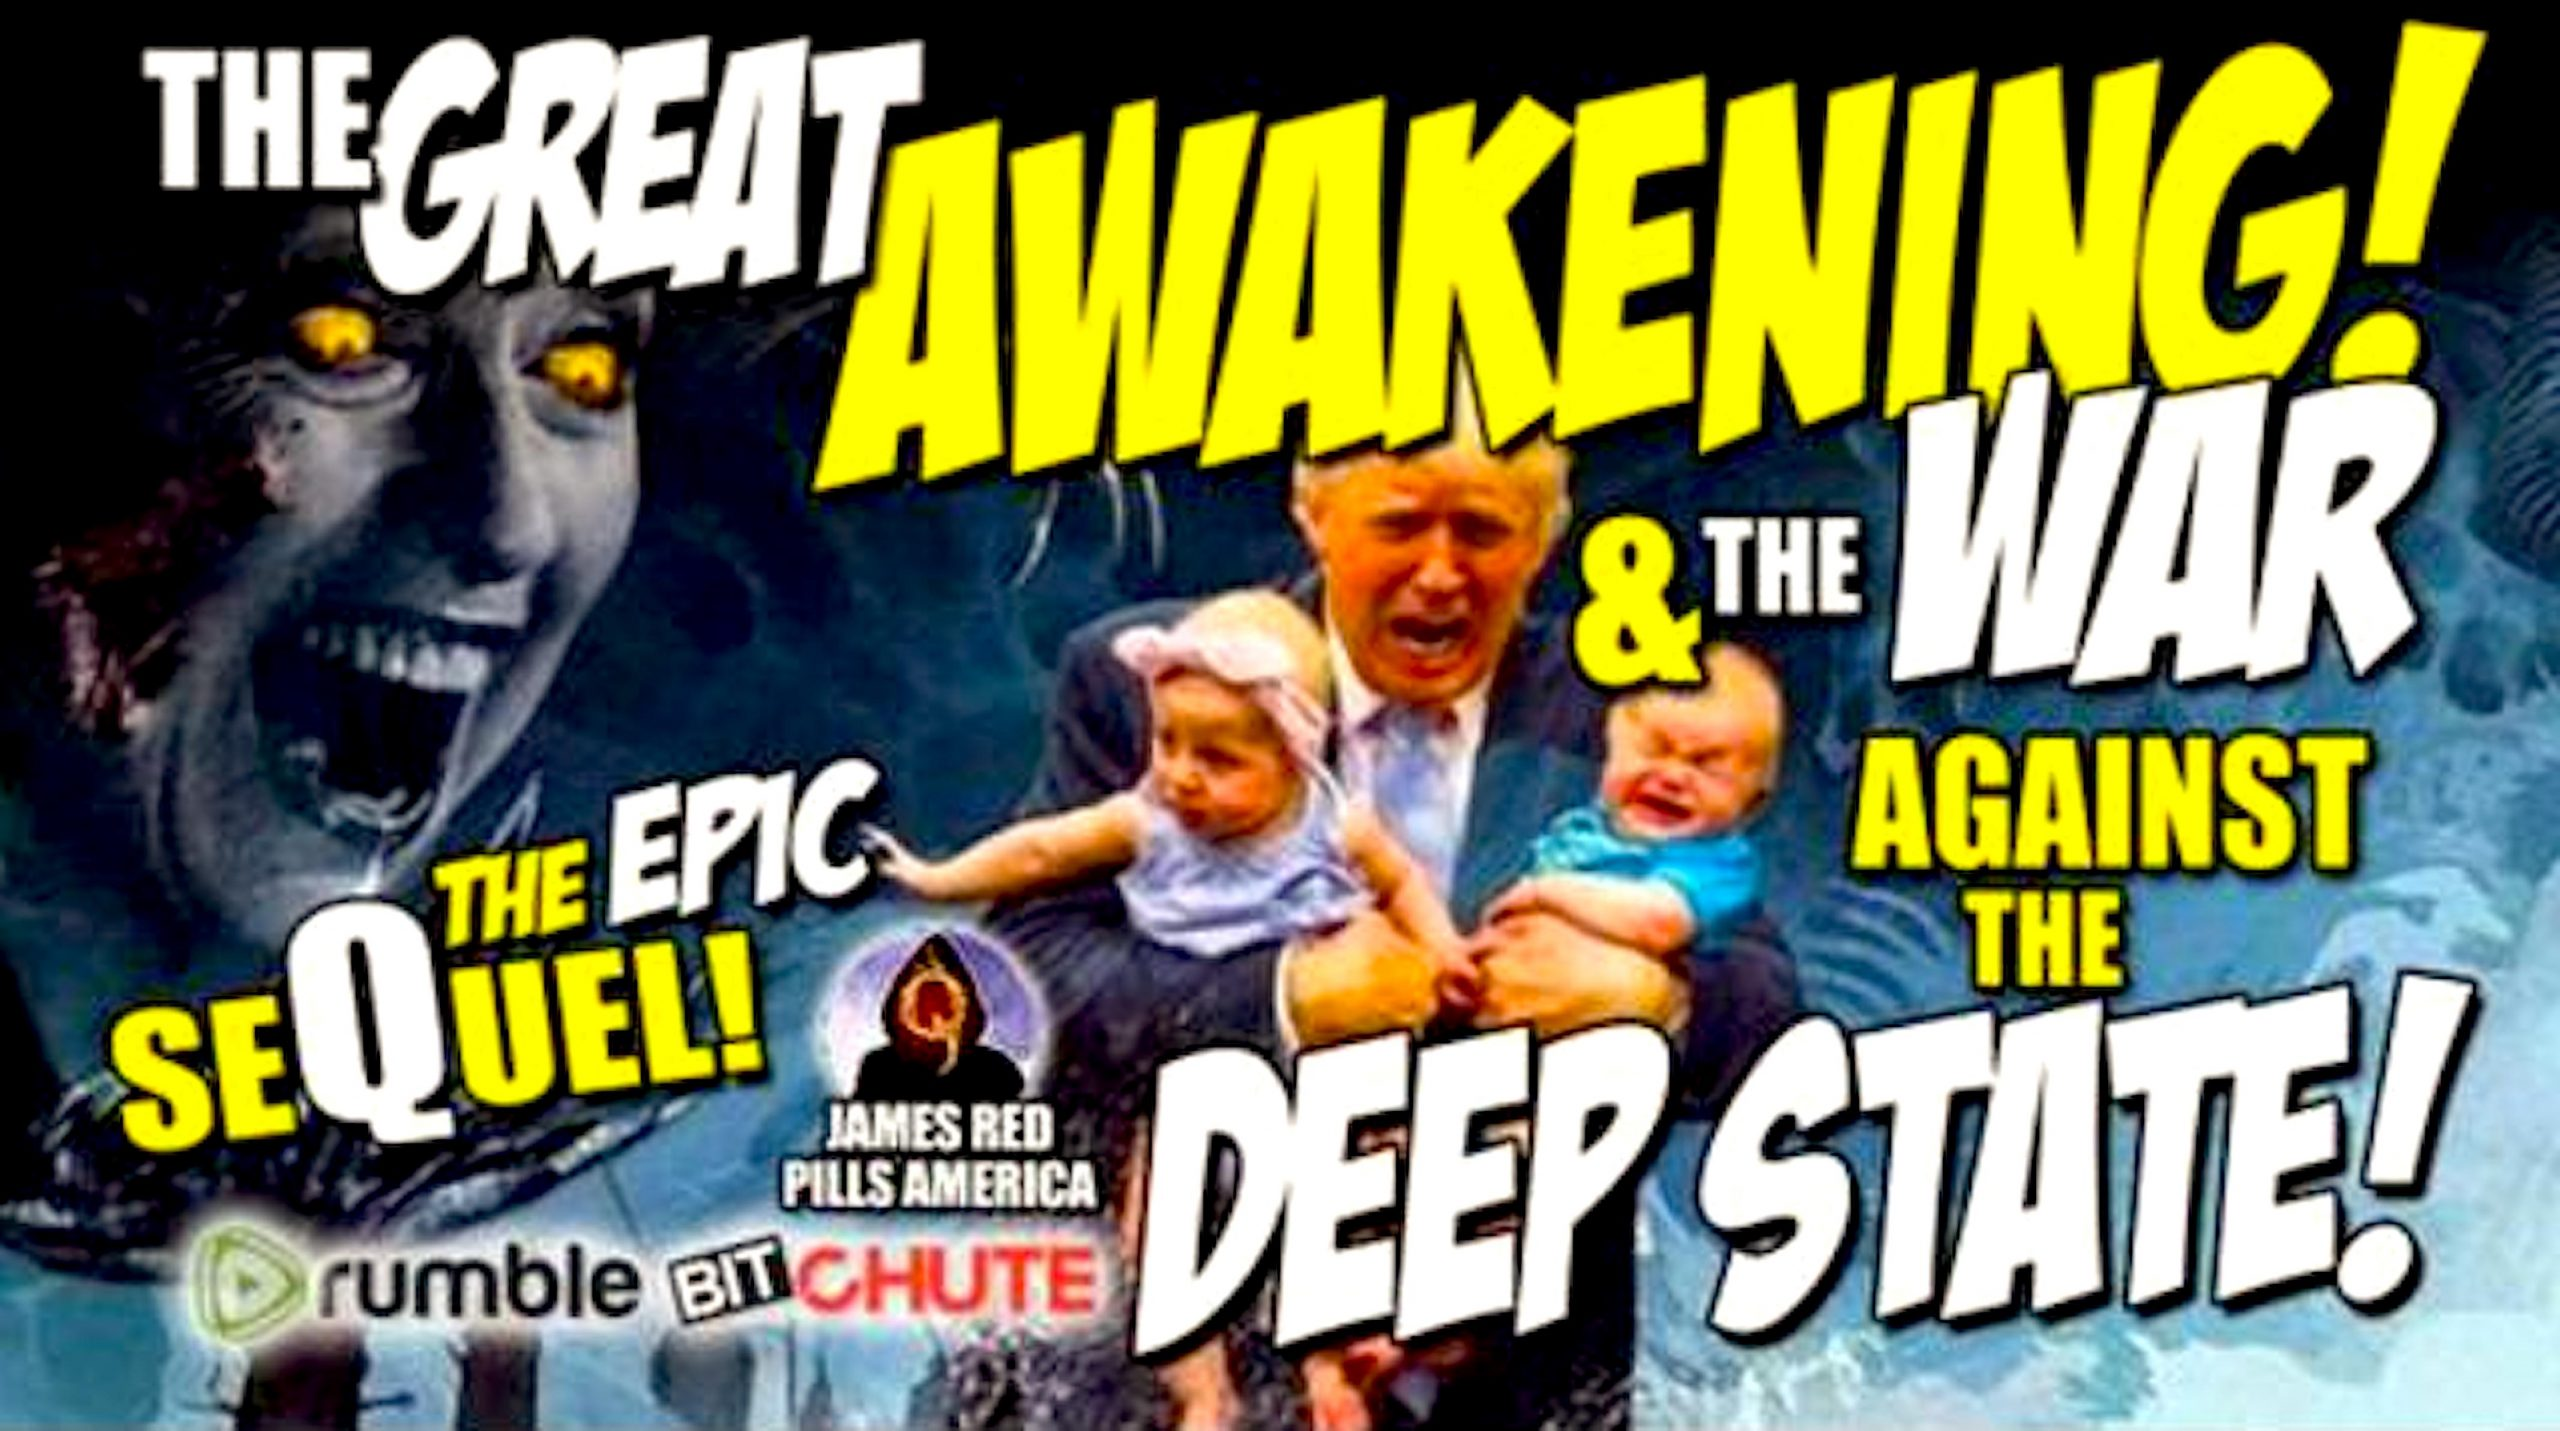 The GREAT AWAKENING! & the WAR against the DEEP STATE (foto Bitchute)